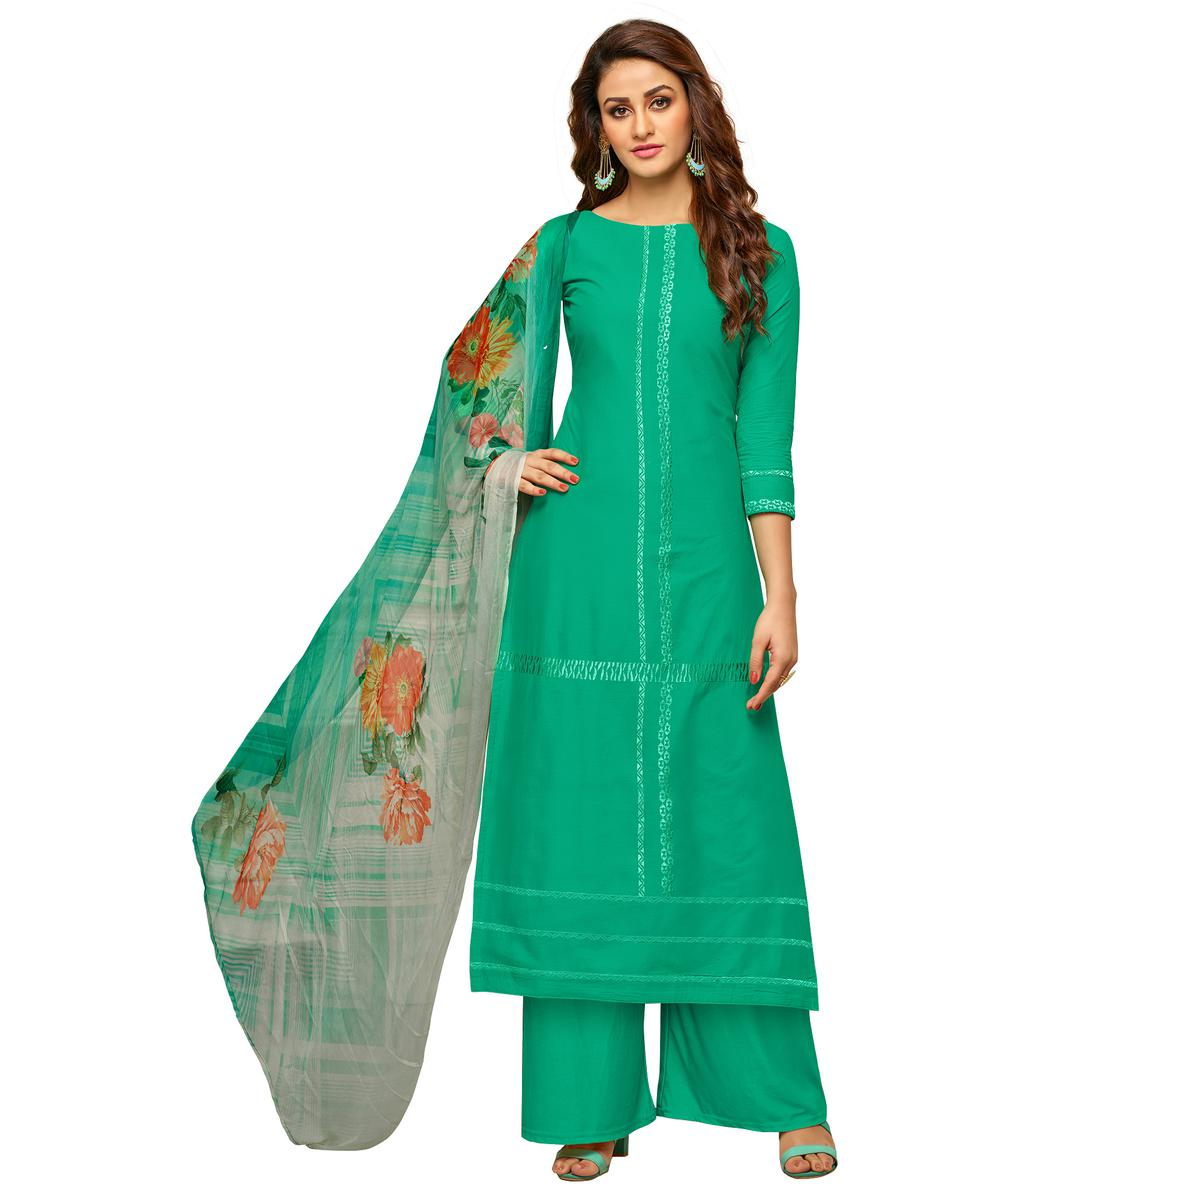 Dashing Turquoise Green Colored Partywear Embroidered Cotton Suit